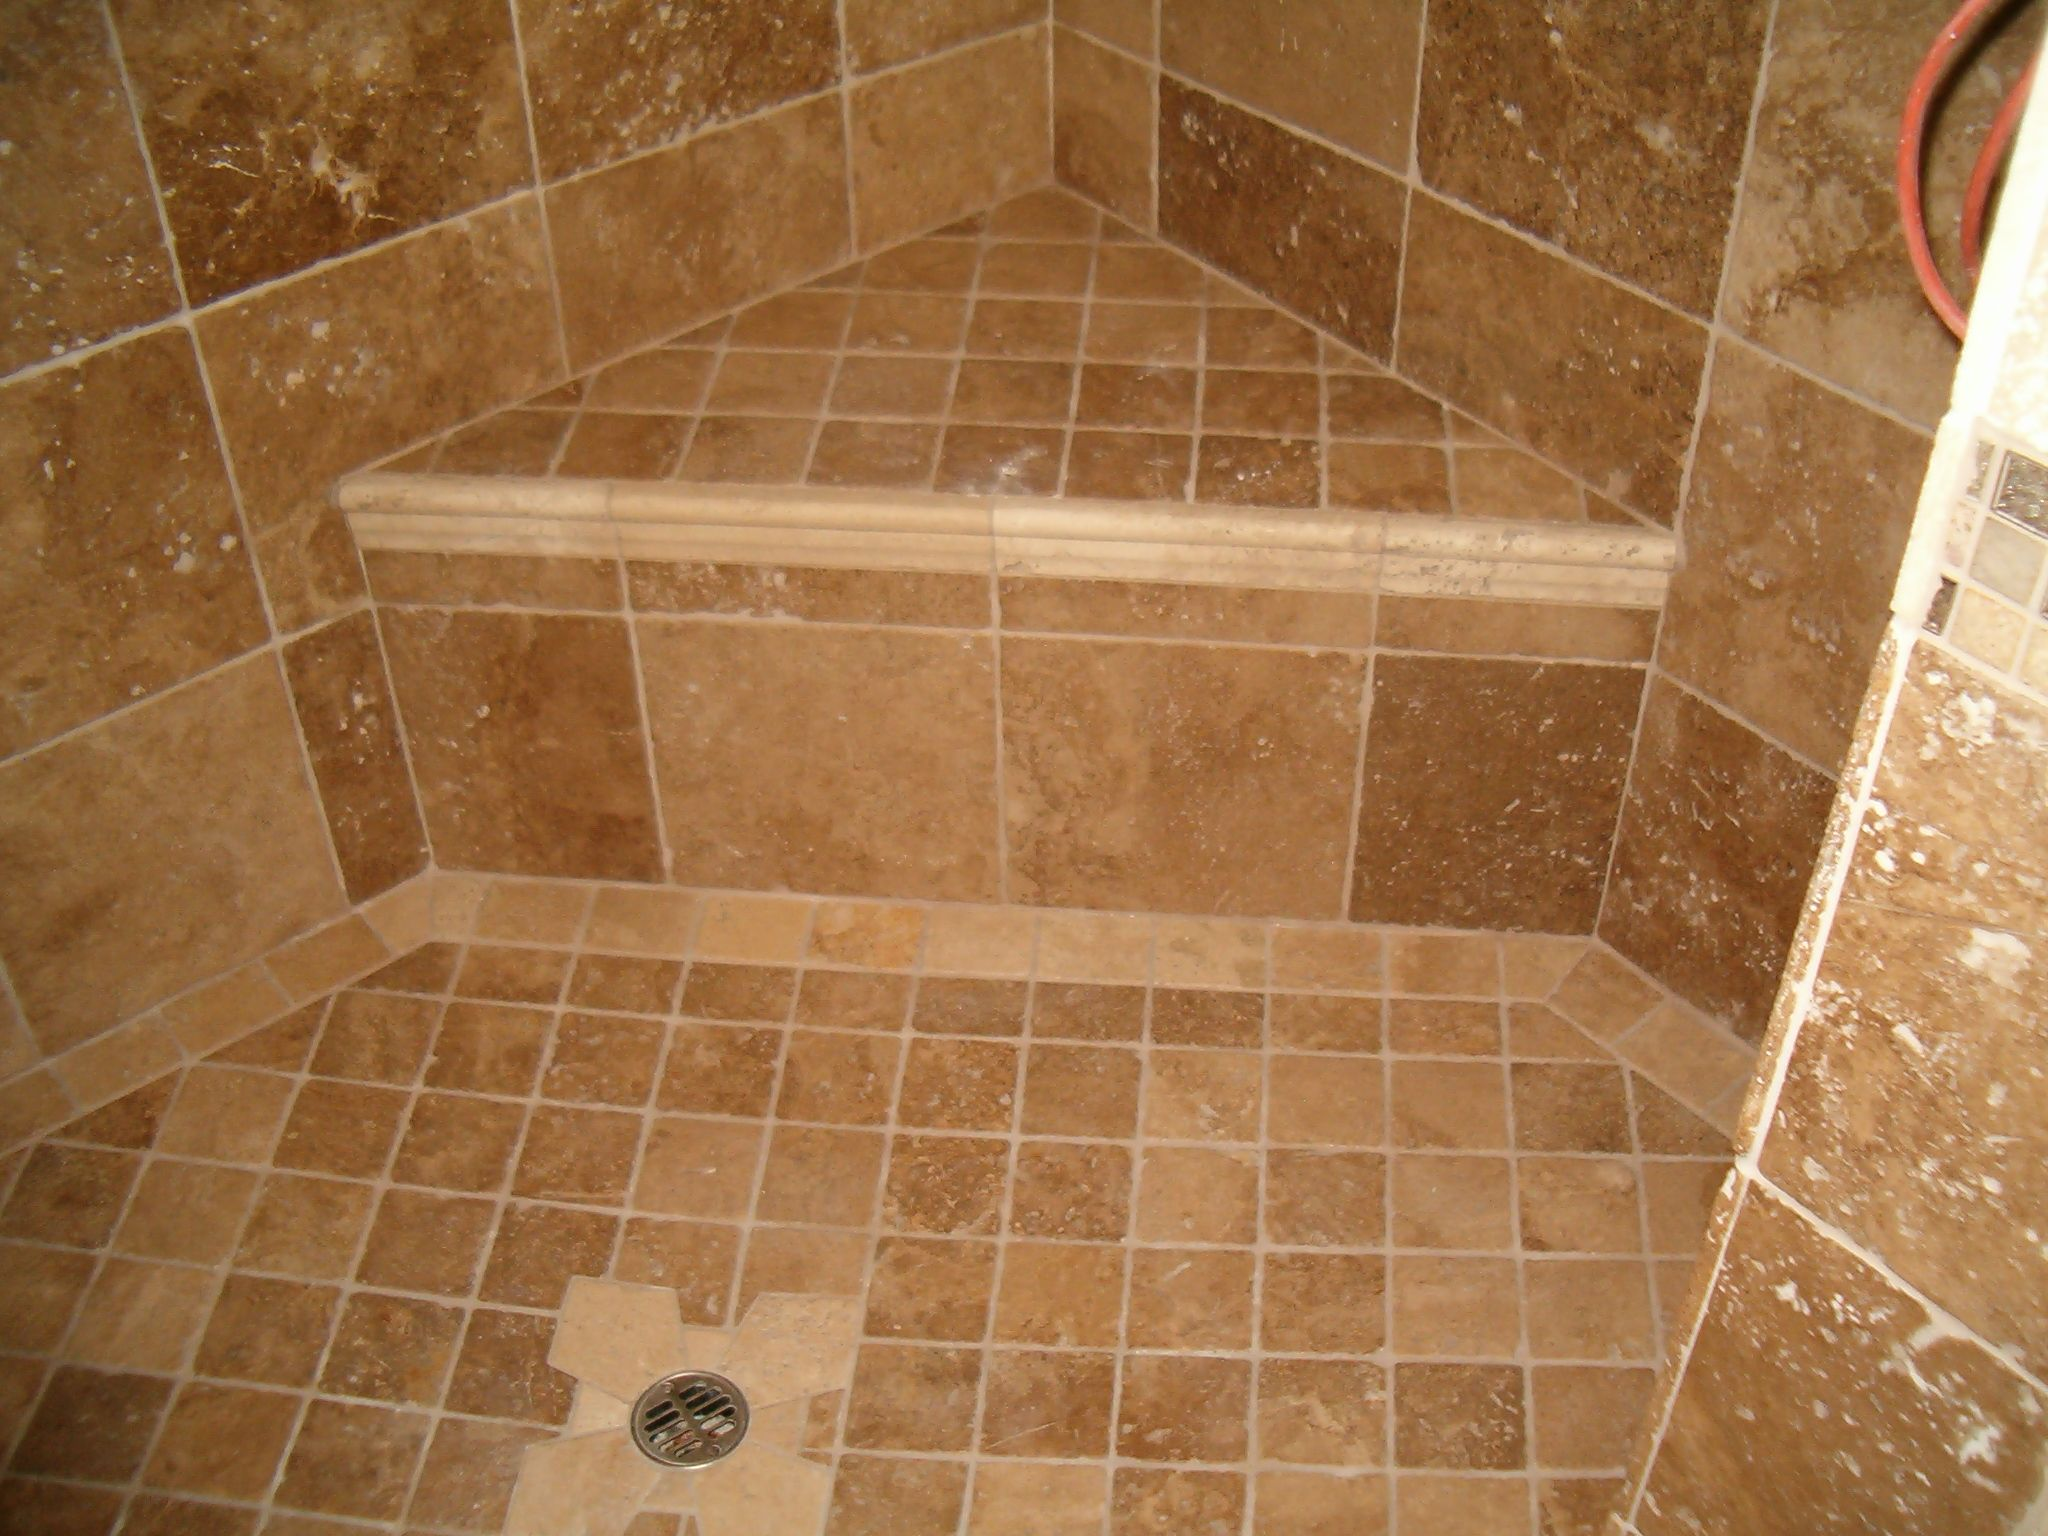 Secret Grout to Tiled Showers - http://www.byzcathsem.org/secret ...